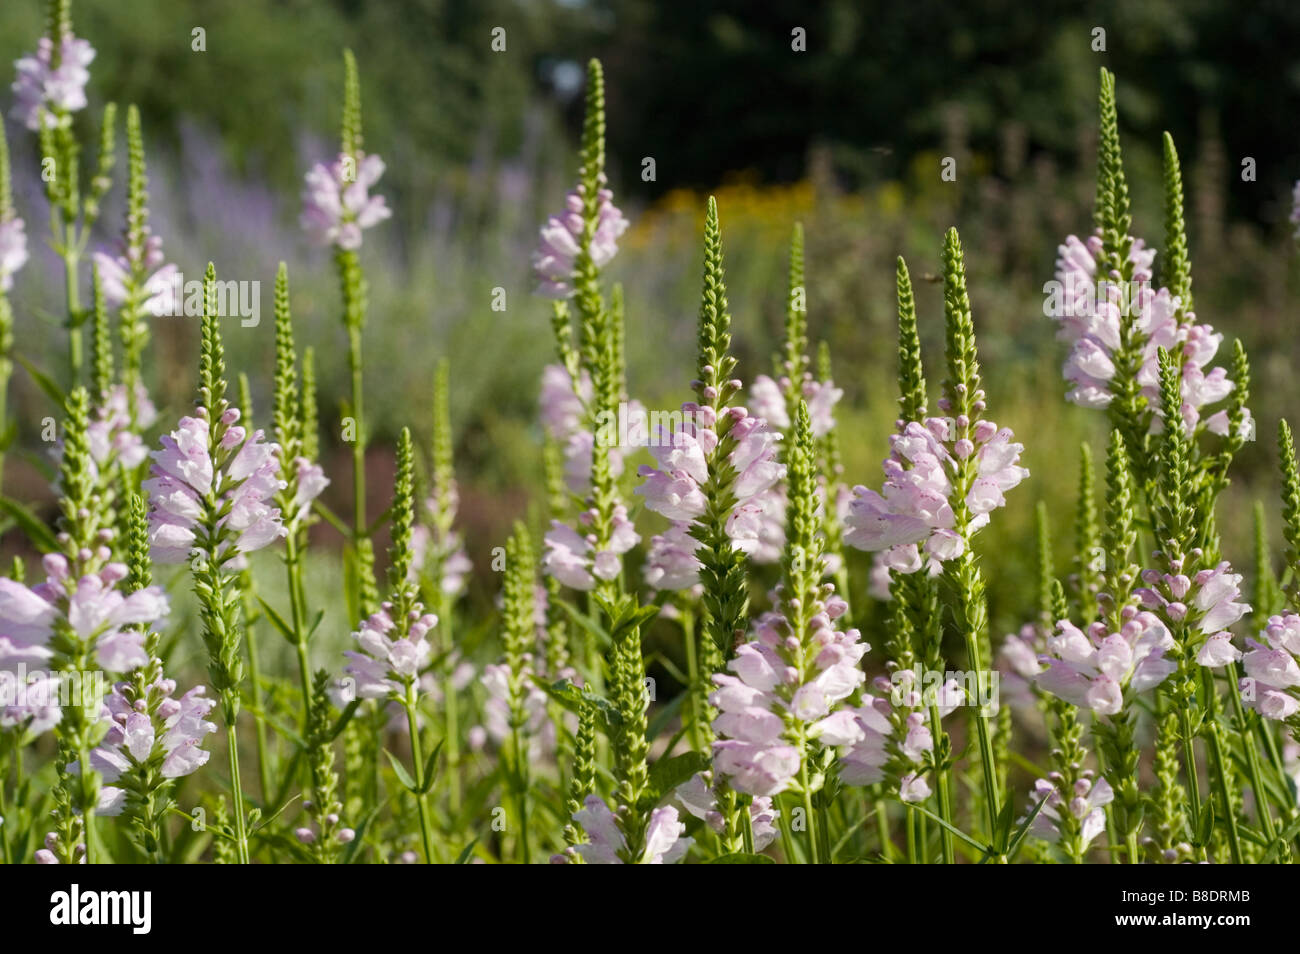 Flowers of obedient plant , Physostegia virginiana, North America, USA, Canada - Stock Image